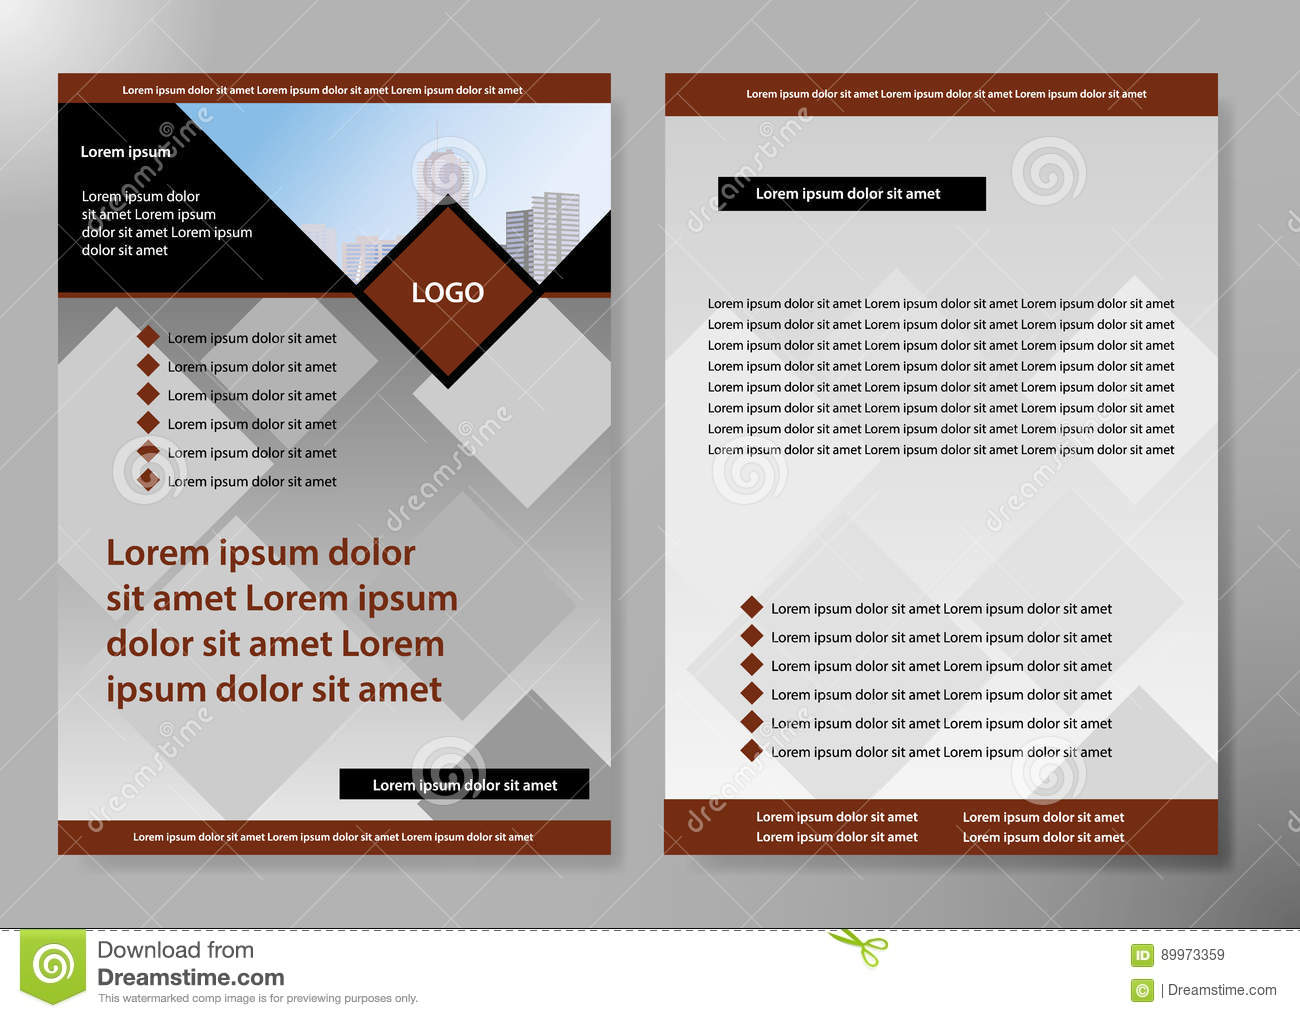 Minimal flyers report business magazine poster layout portfolio download minimal flyers report business magazine poster layout portfolio templateochure design template vector accmission Gallery